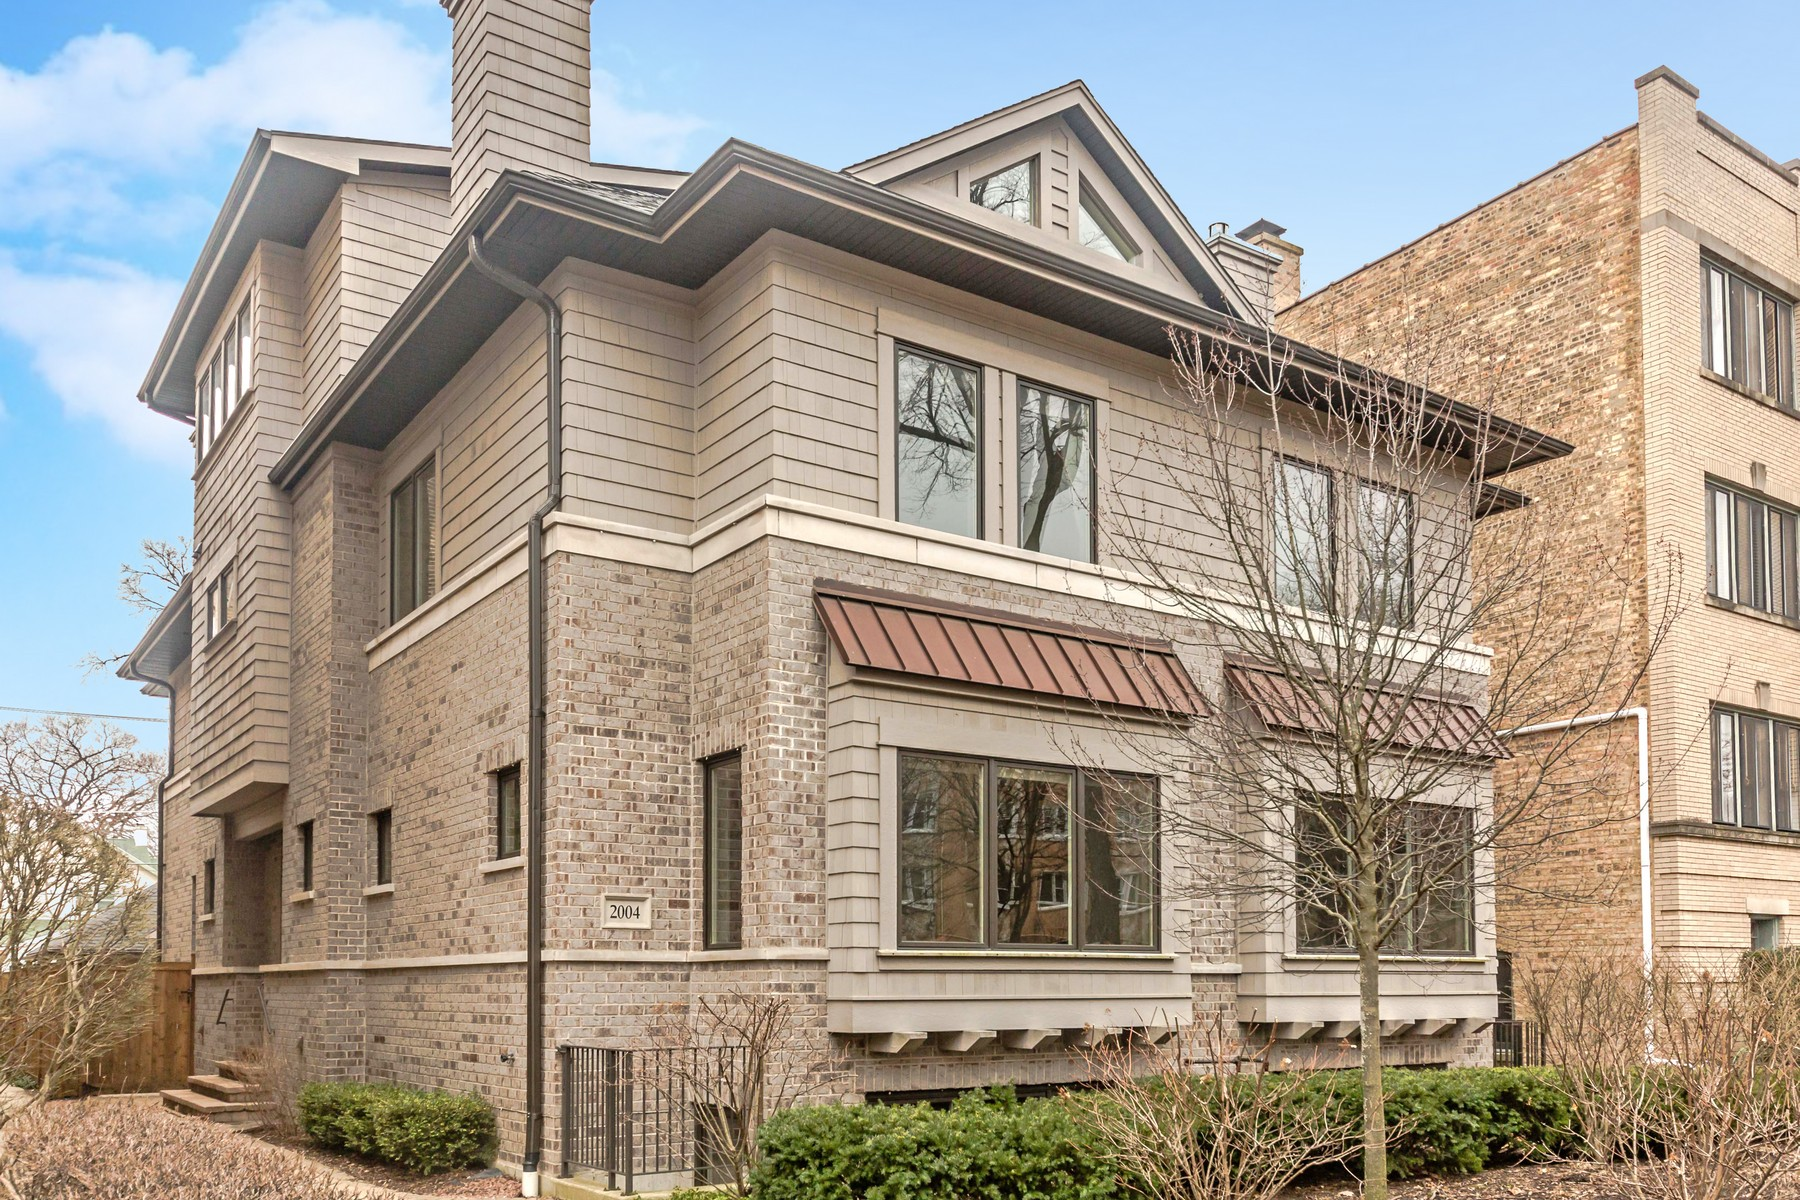 Maison unifamiliale pour l Vente à The Absolute Best Location! 2004 Harrison Street Evanston, Illinois, 60201 États-Unis